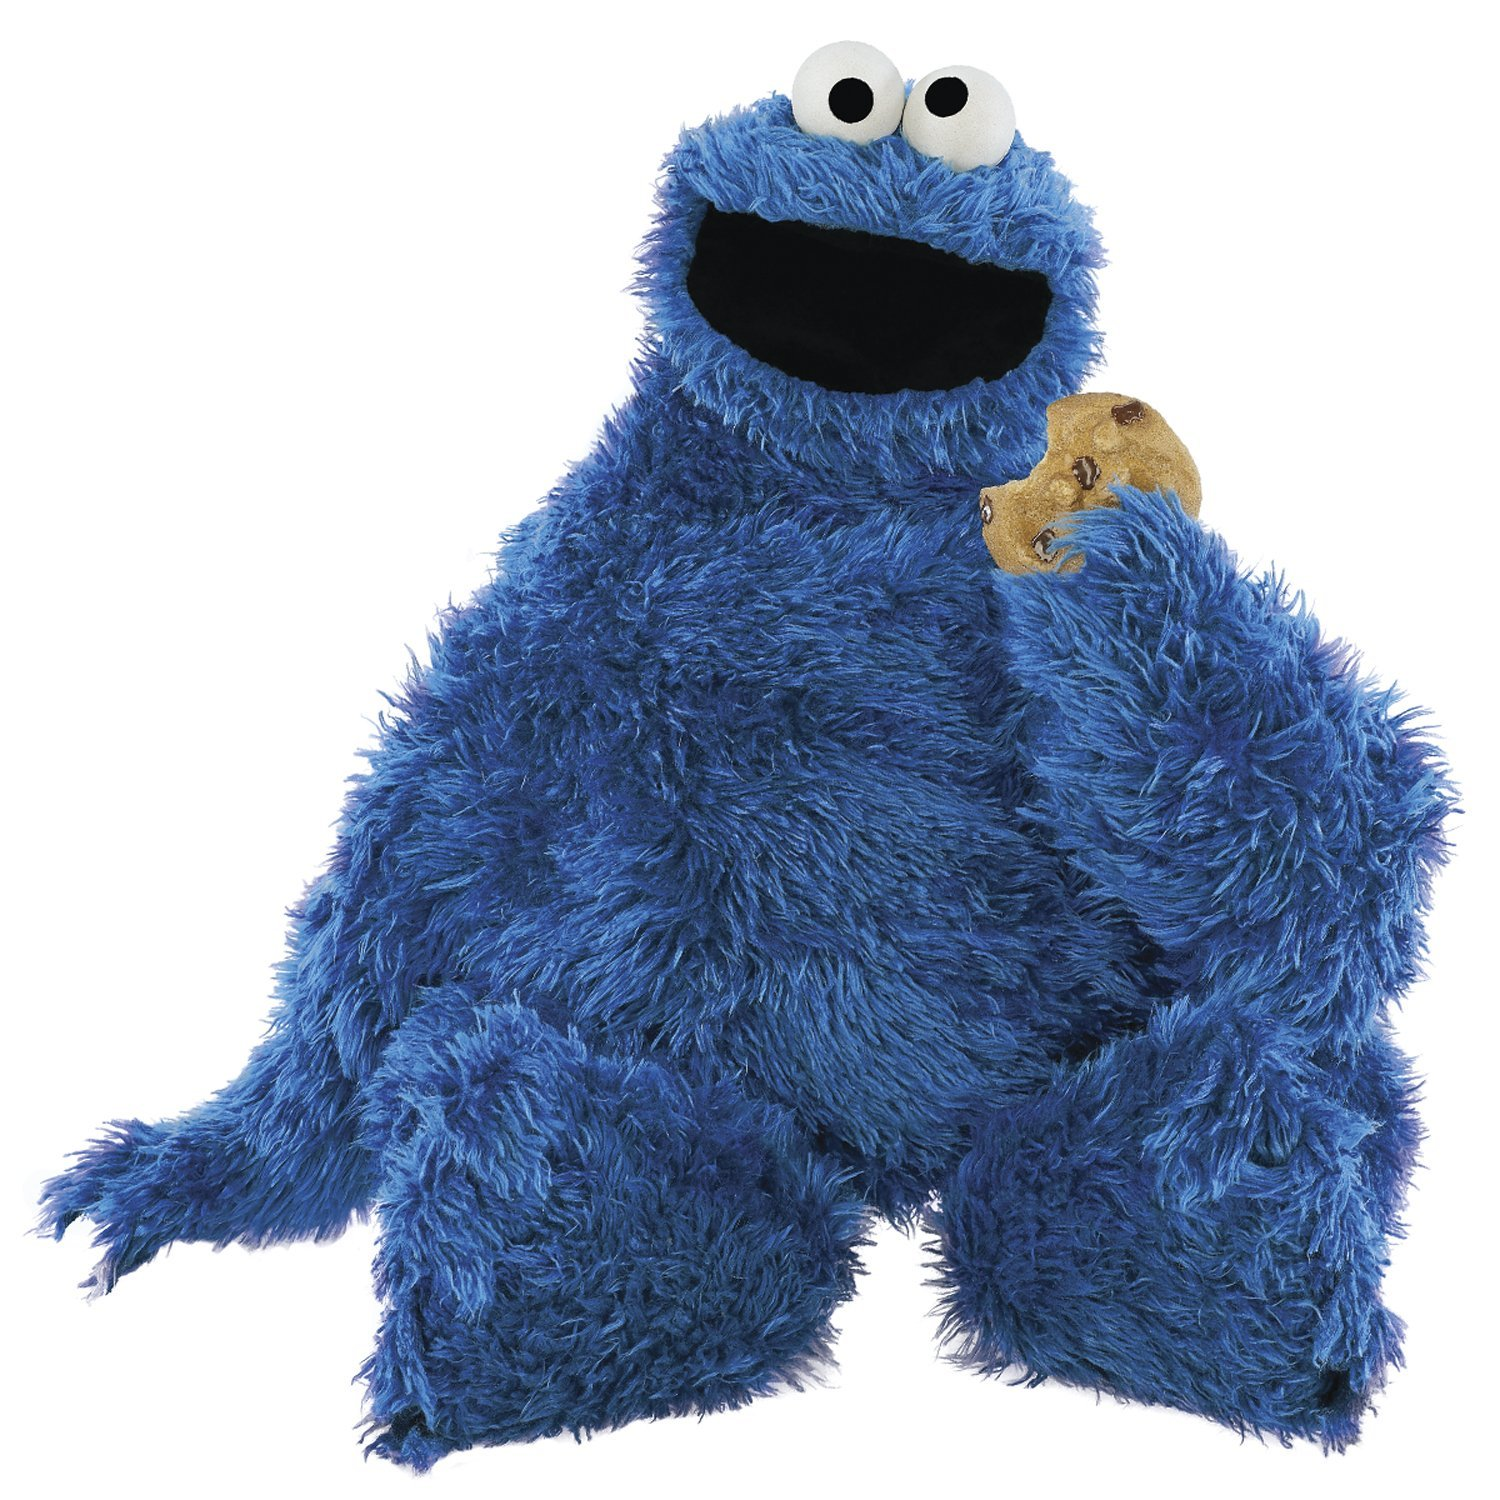 RoomMates RMK1483GM Sesame Street Cookie Monster Giant Peel u0026 Stick Wall  Decal - Childrens Wall Decor - Amazon pluspng.com - Cookie Monster PNG HD